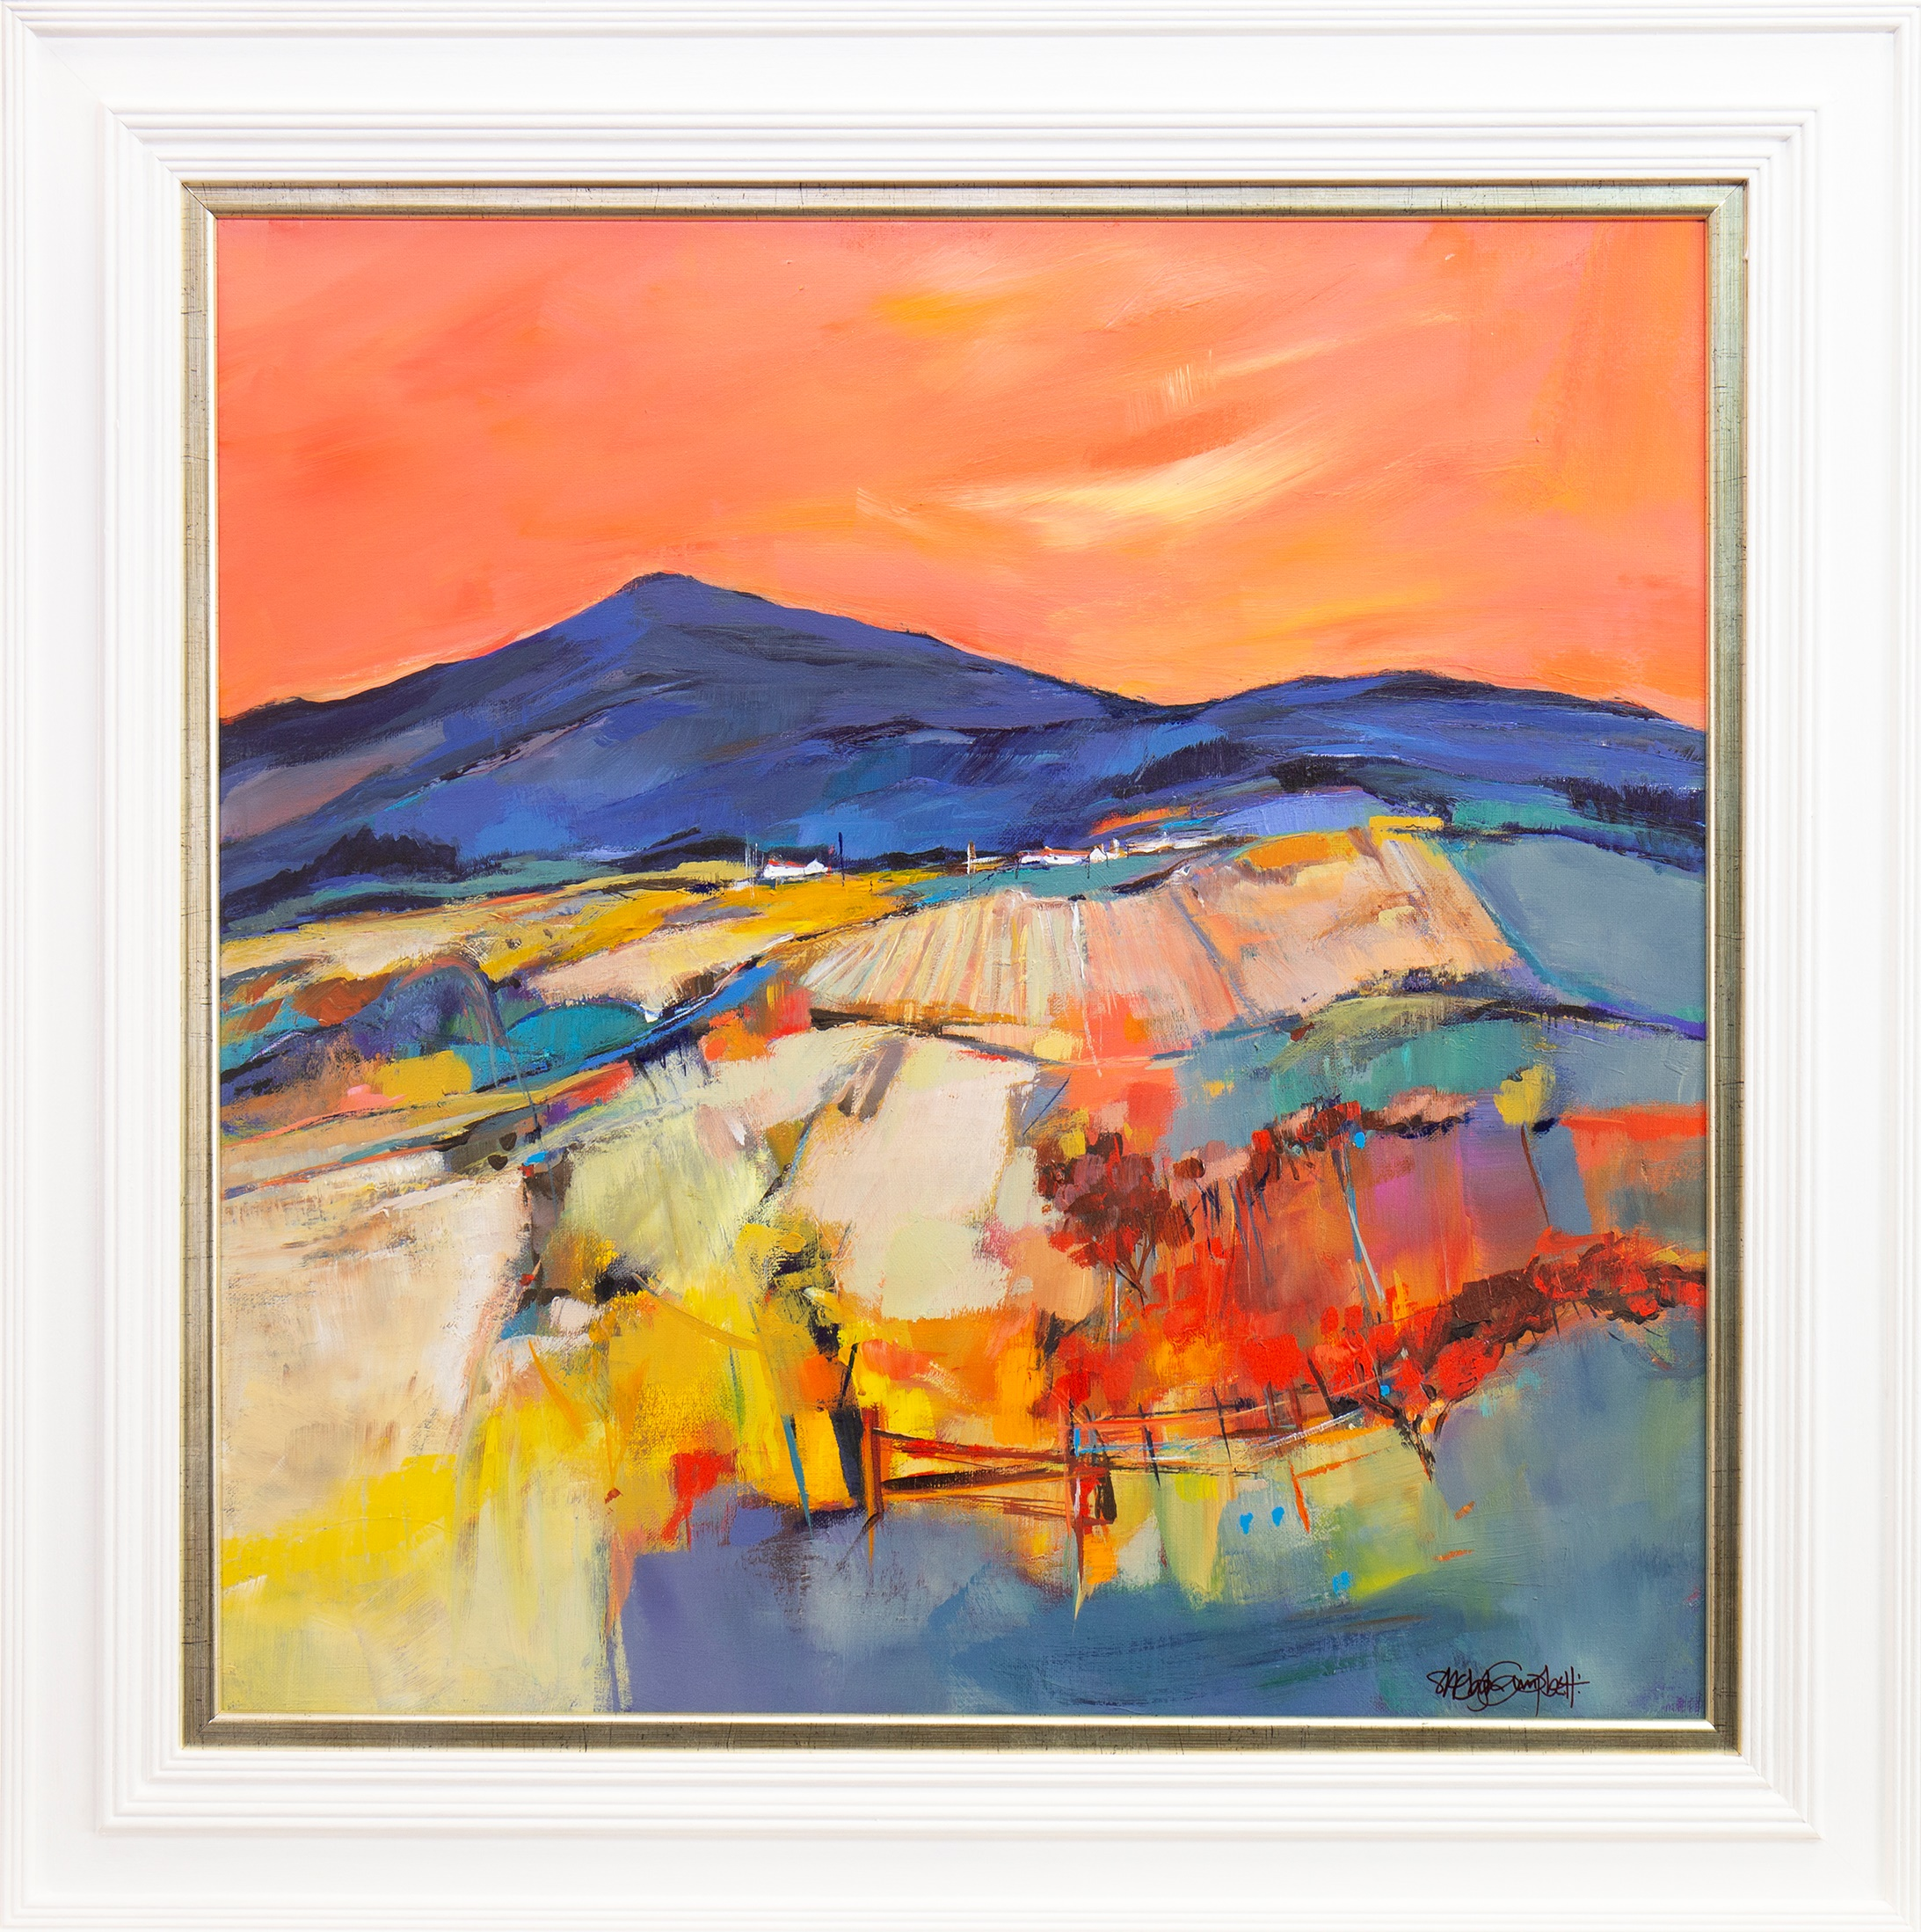 Lot 47 - MISTY LAW, SUNSET, AN ACRYLIC BY SHELAGH CAMPBELL